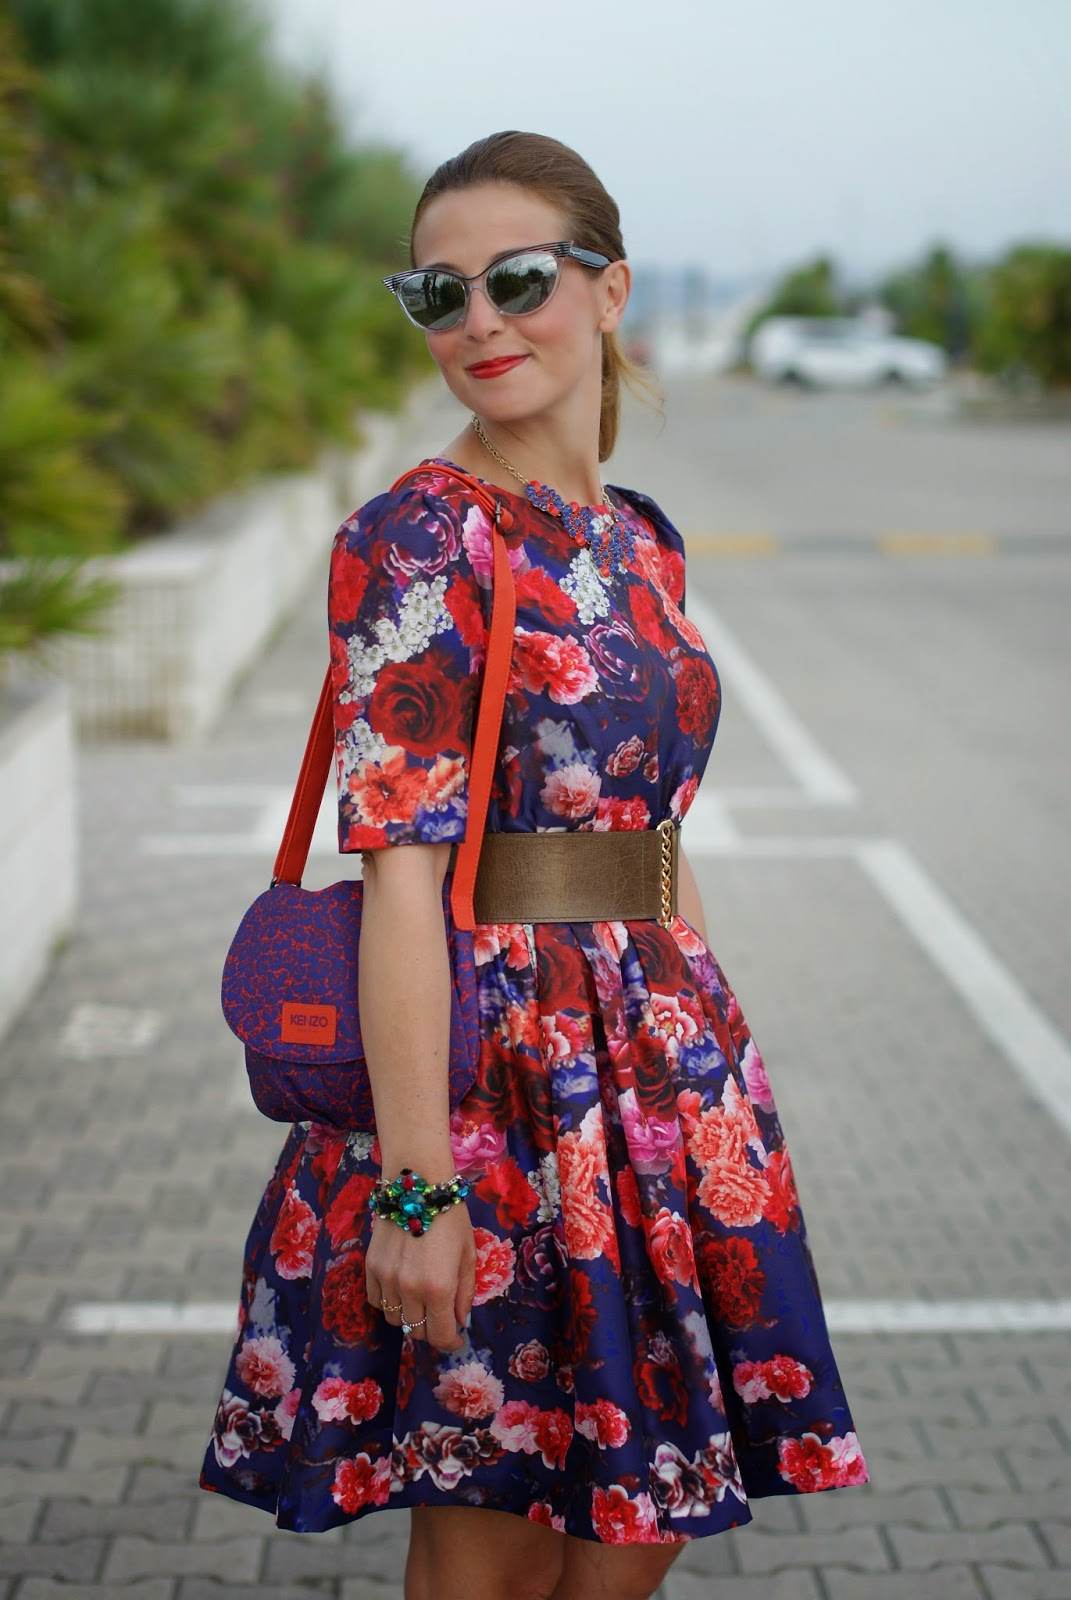 50s red roses dress, Kenzo bag, mercantia bracciali e collane, Fashion and Cookies, fashion blogger